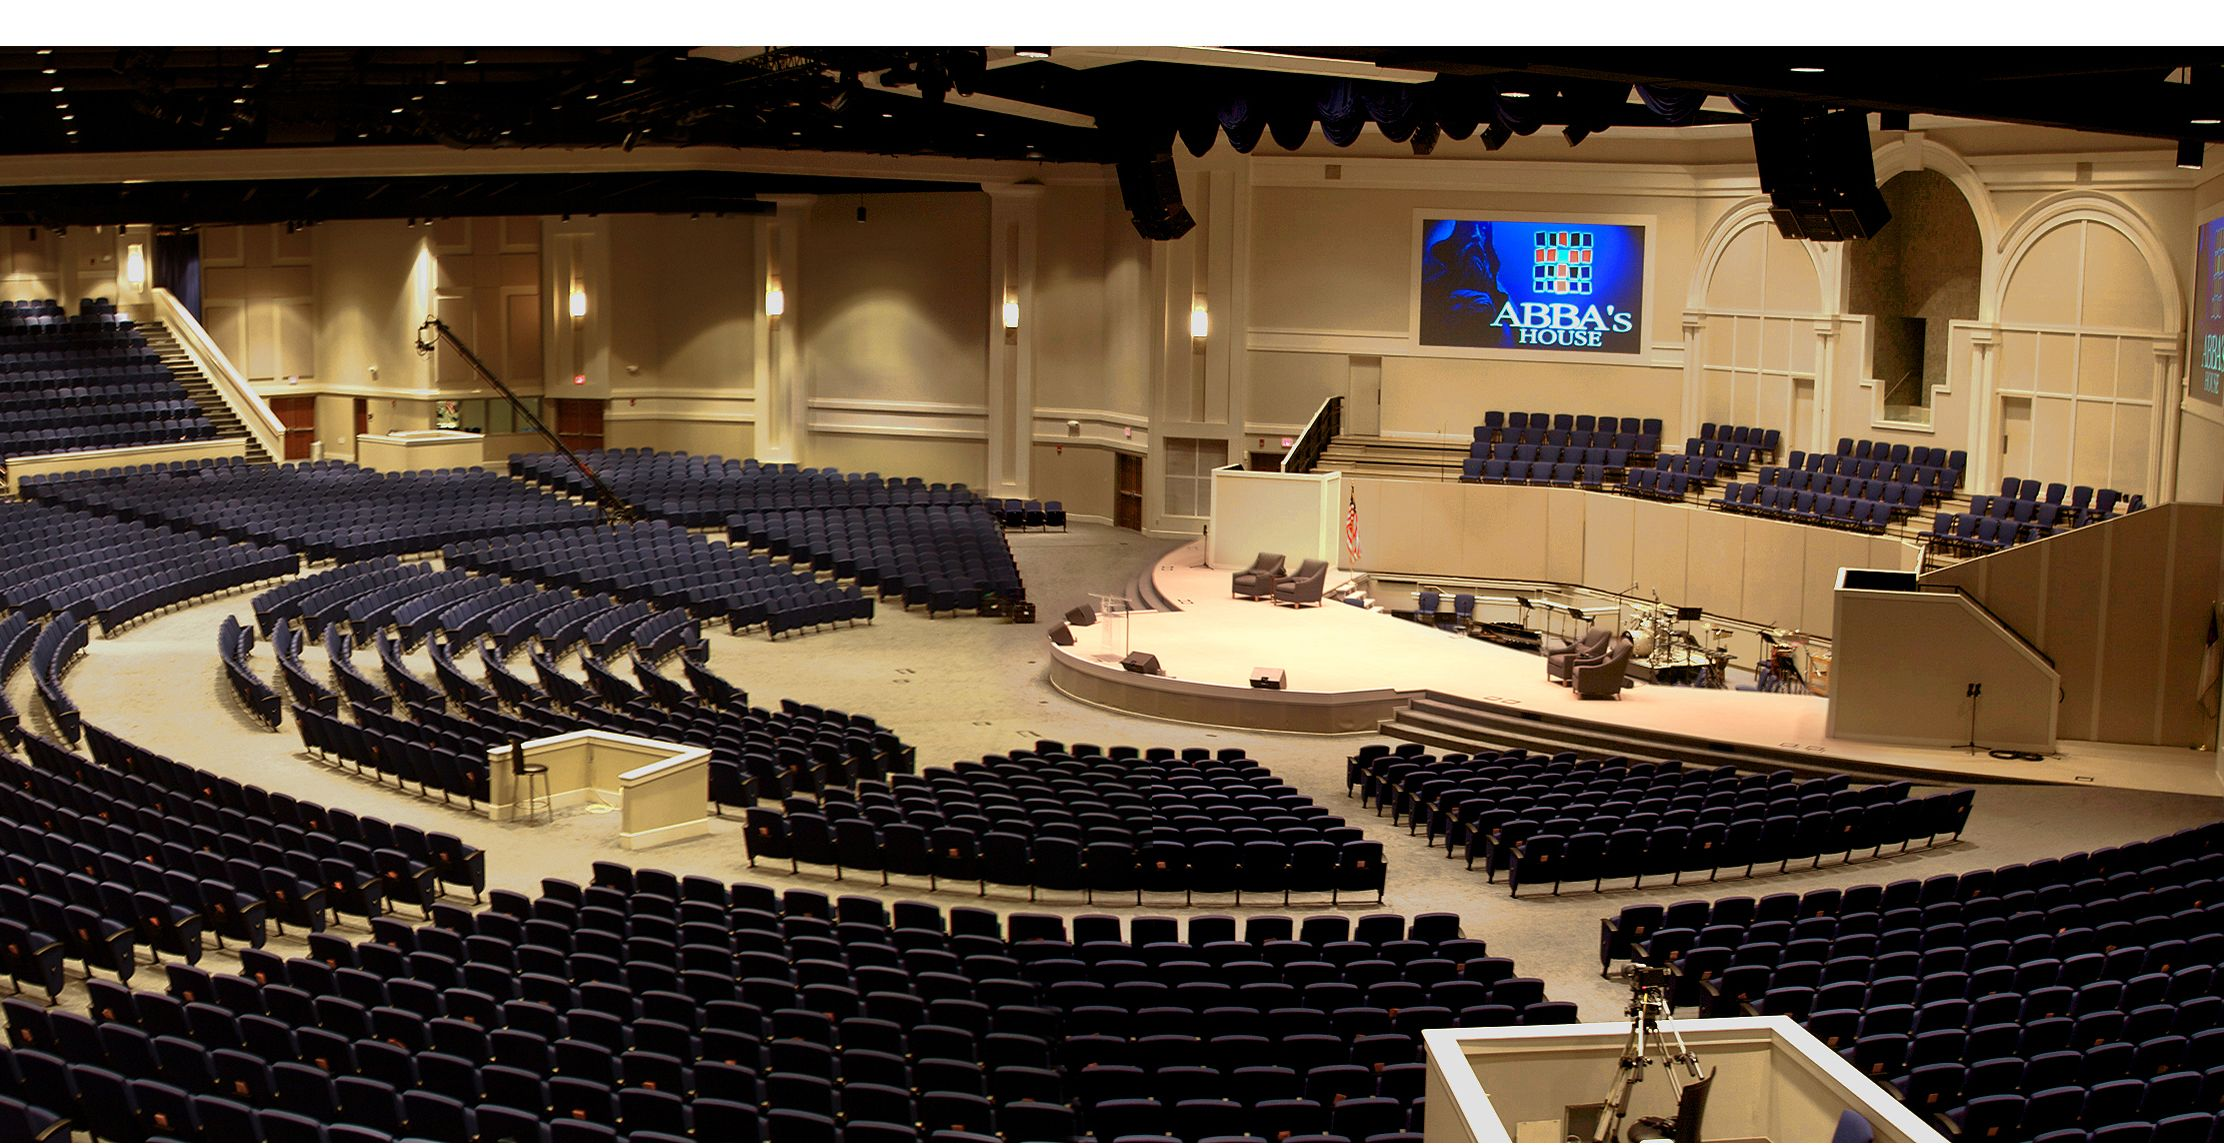 Church auditorium designed to seat 4 400 in a radial - Interior designers in chattanooga tn ...